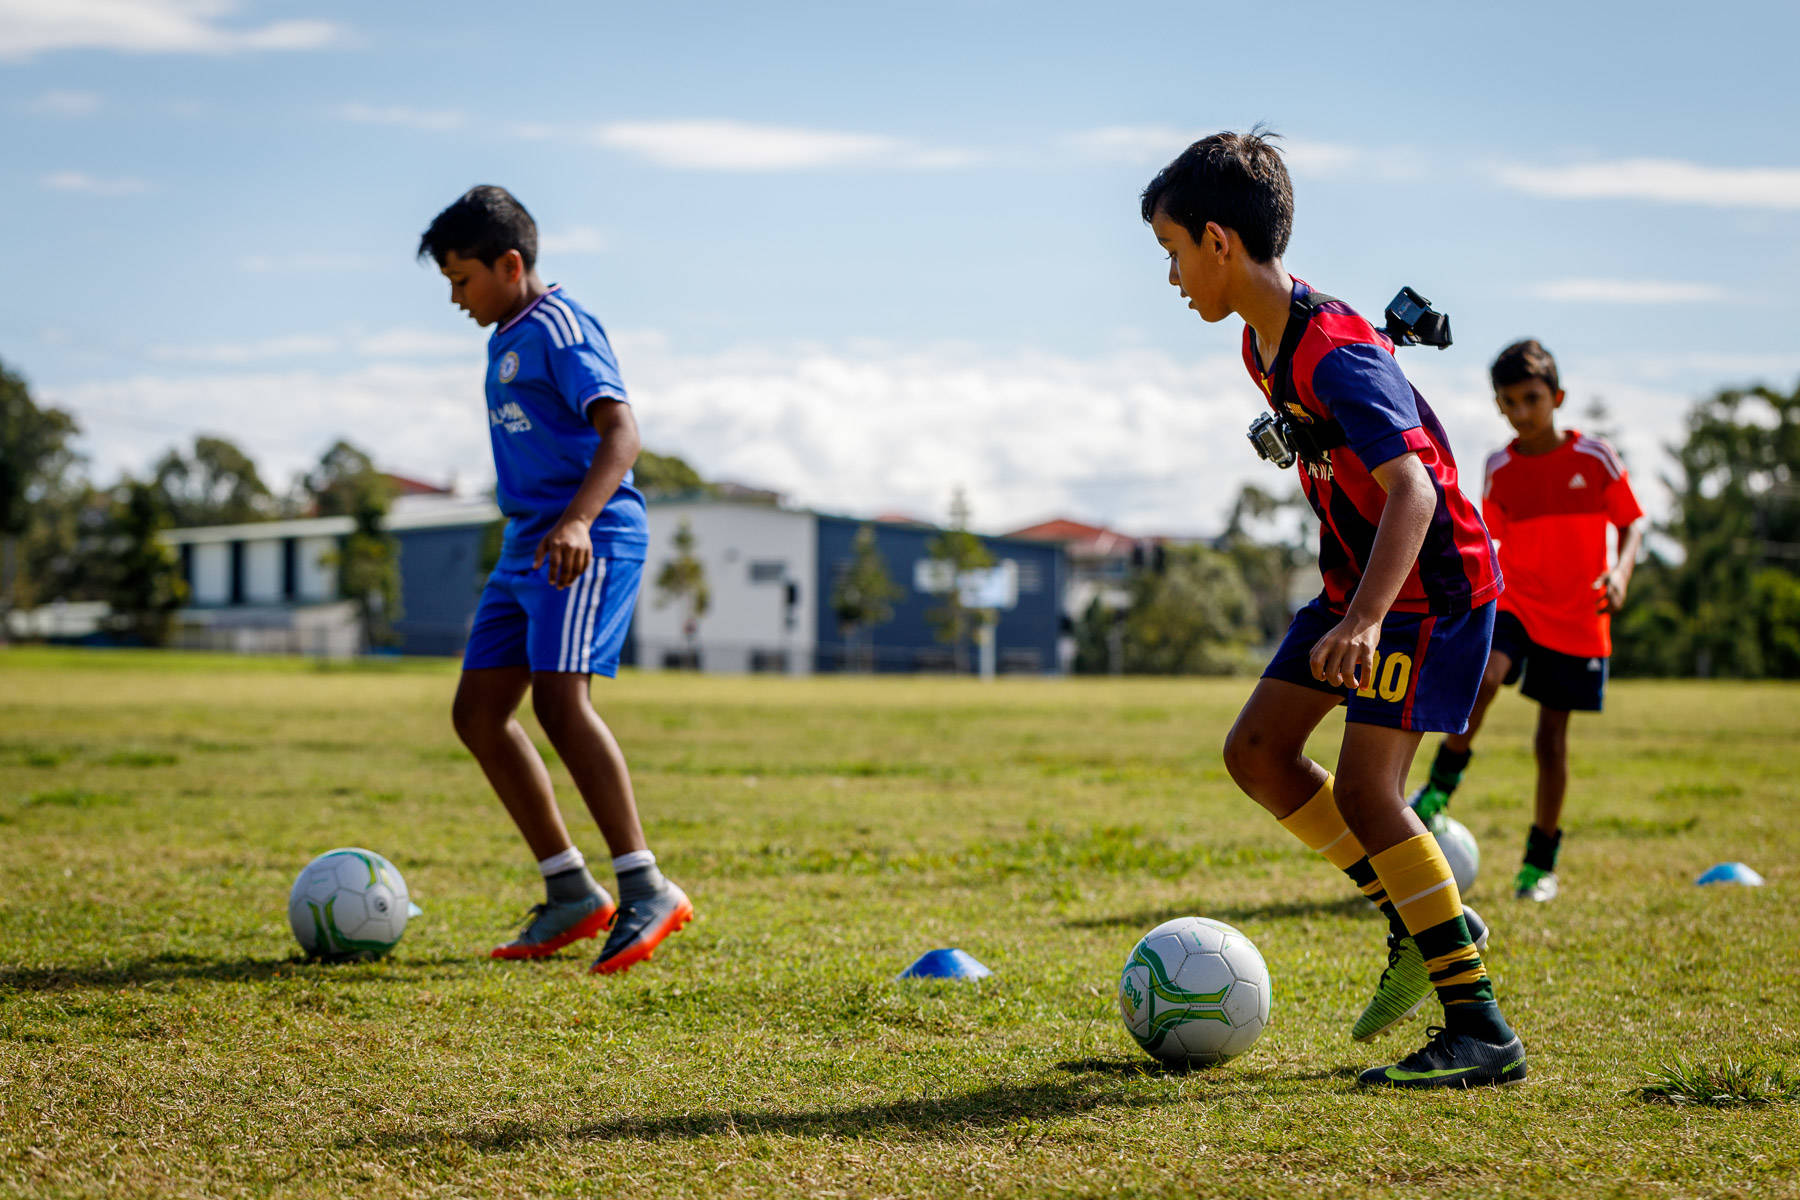 Group Football Coaching Sessions